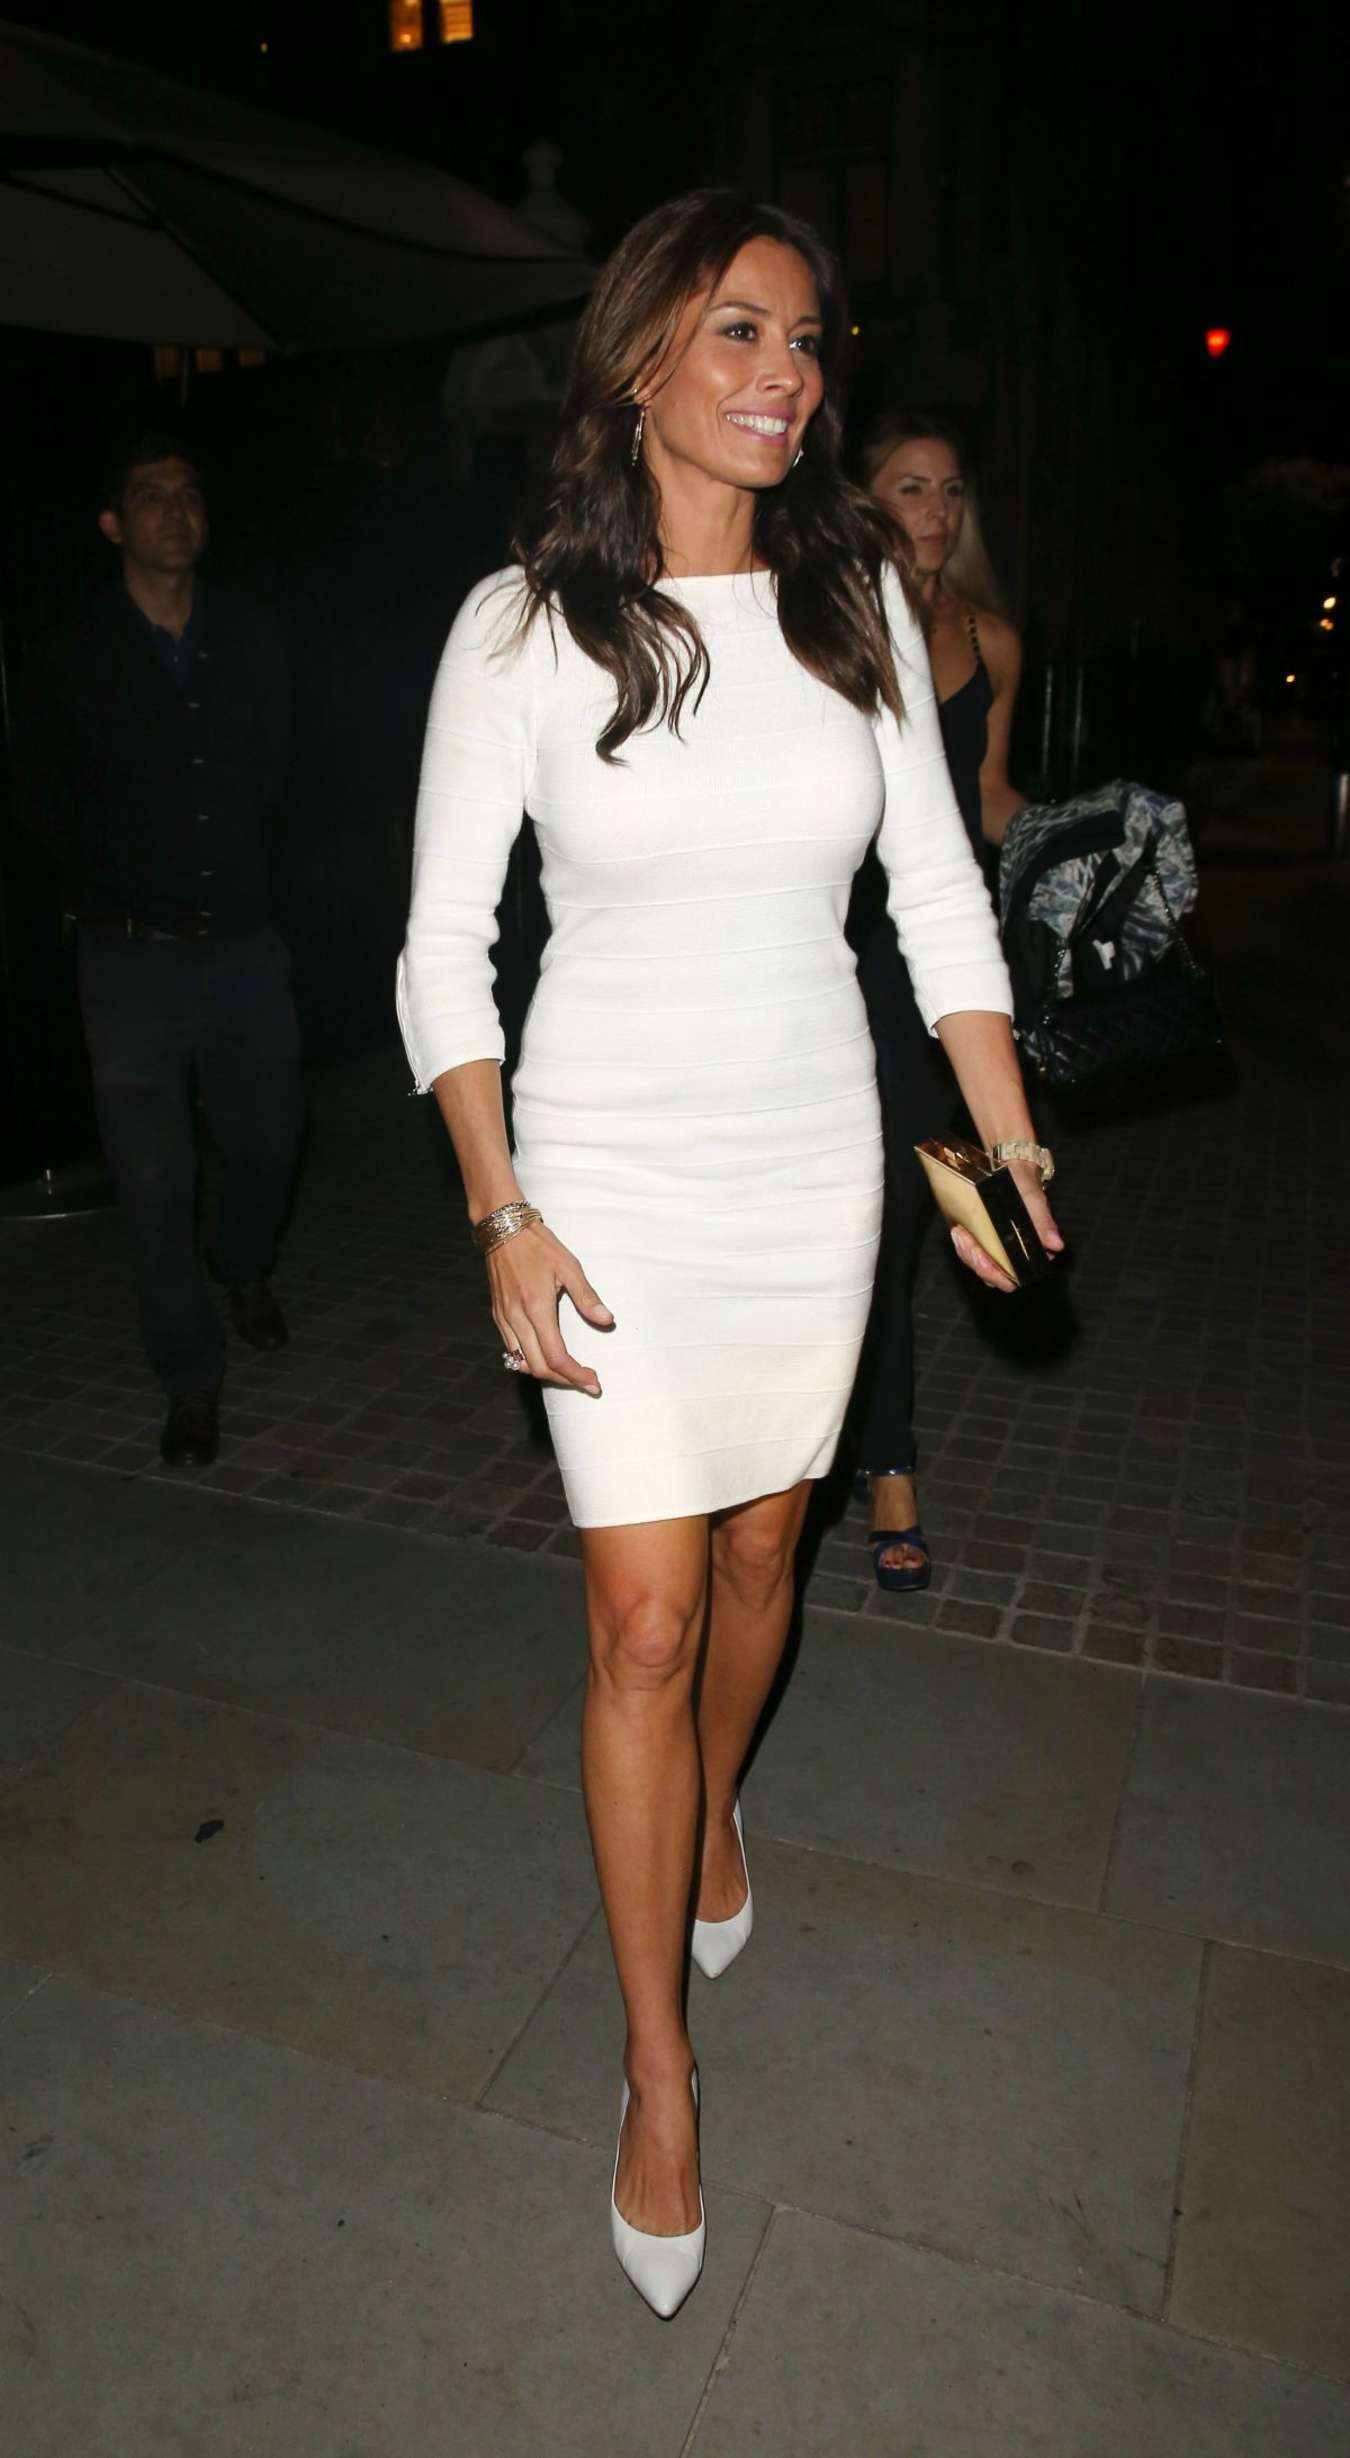 Melanie Sykes Arrives at Chiltern Firehouse in London